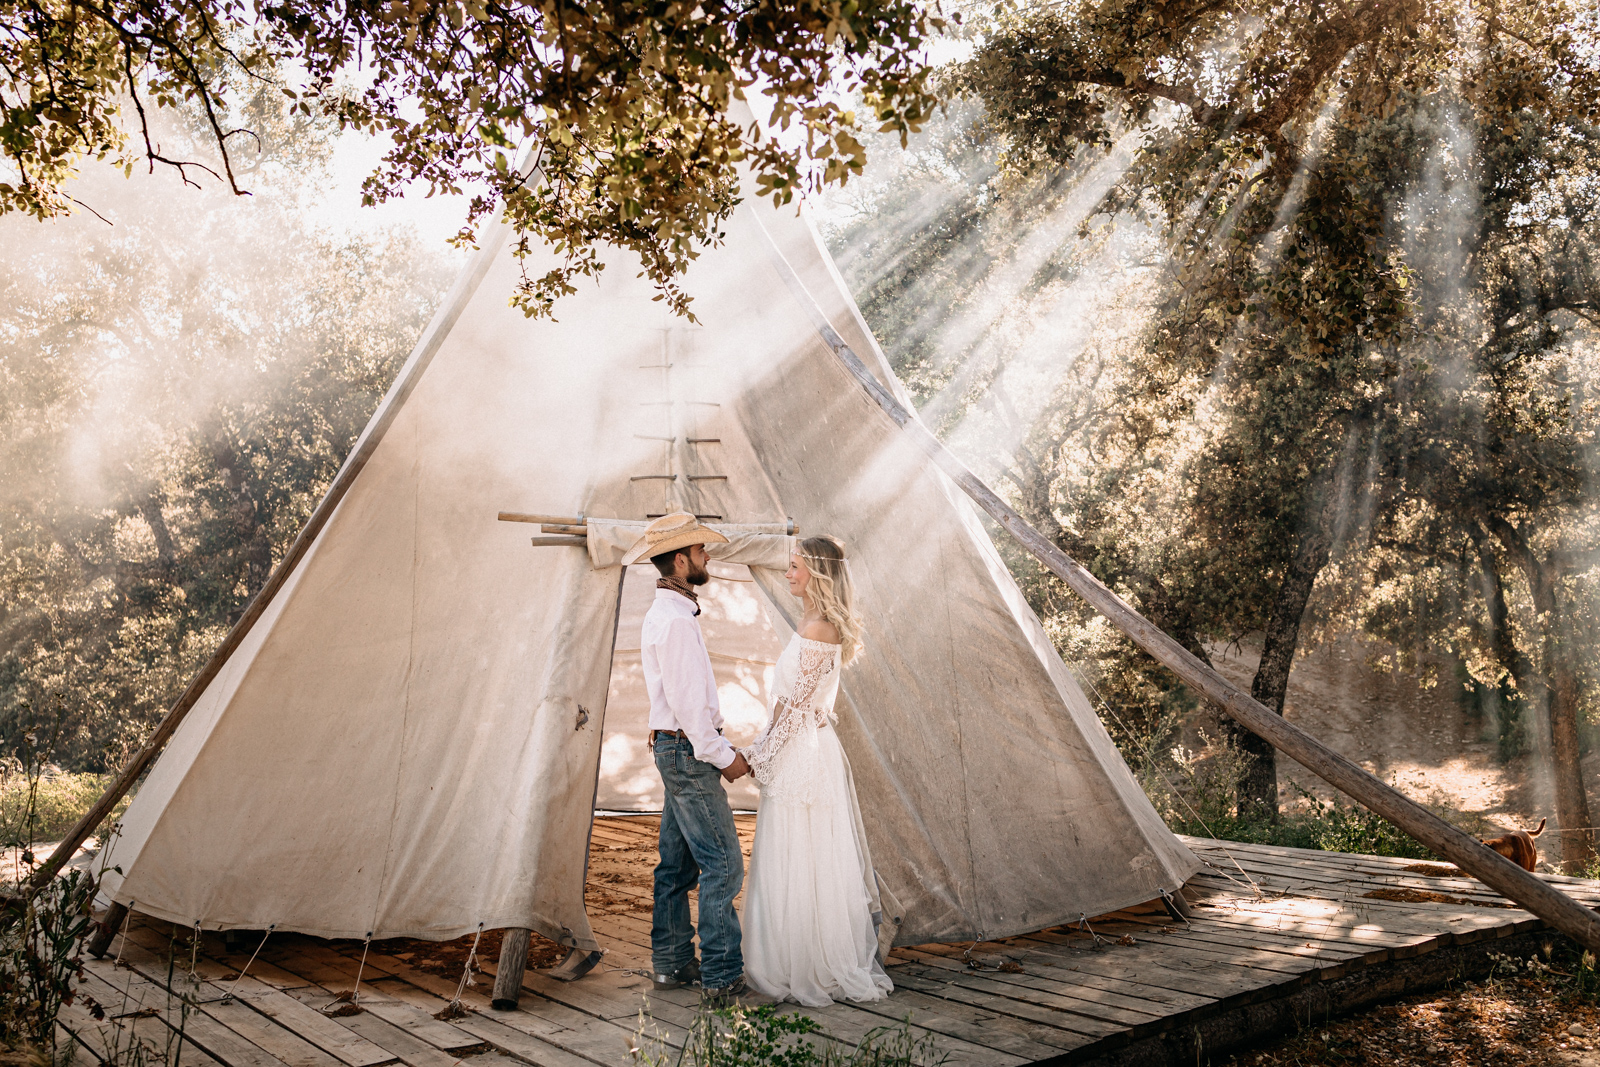 Tipi wedding (Styled Shoot) in Andalusien by Nadja Osieka